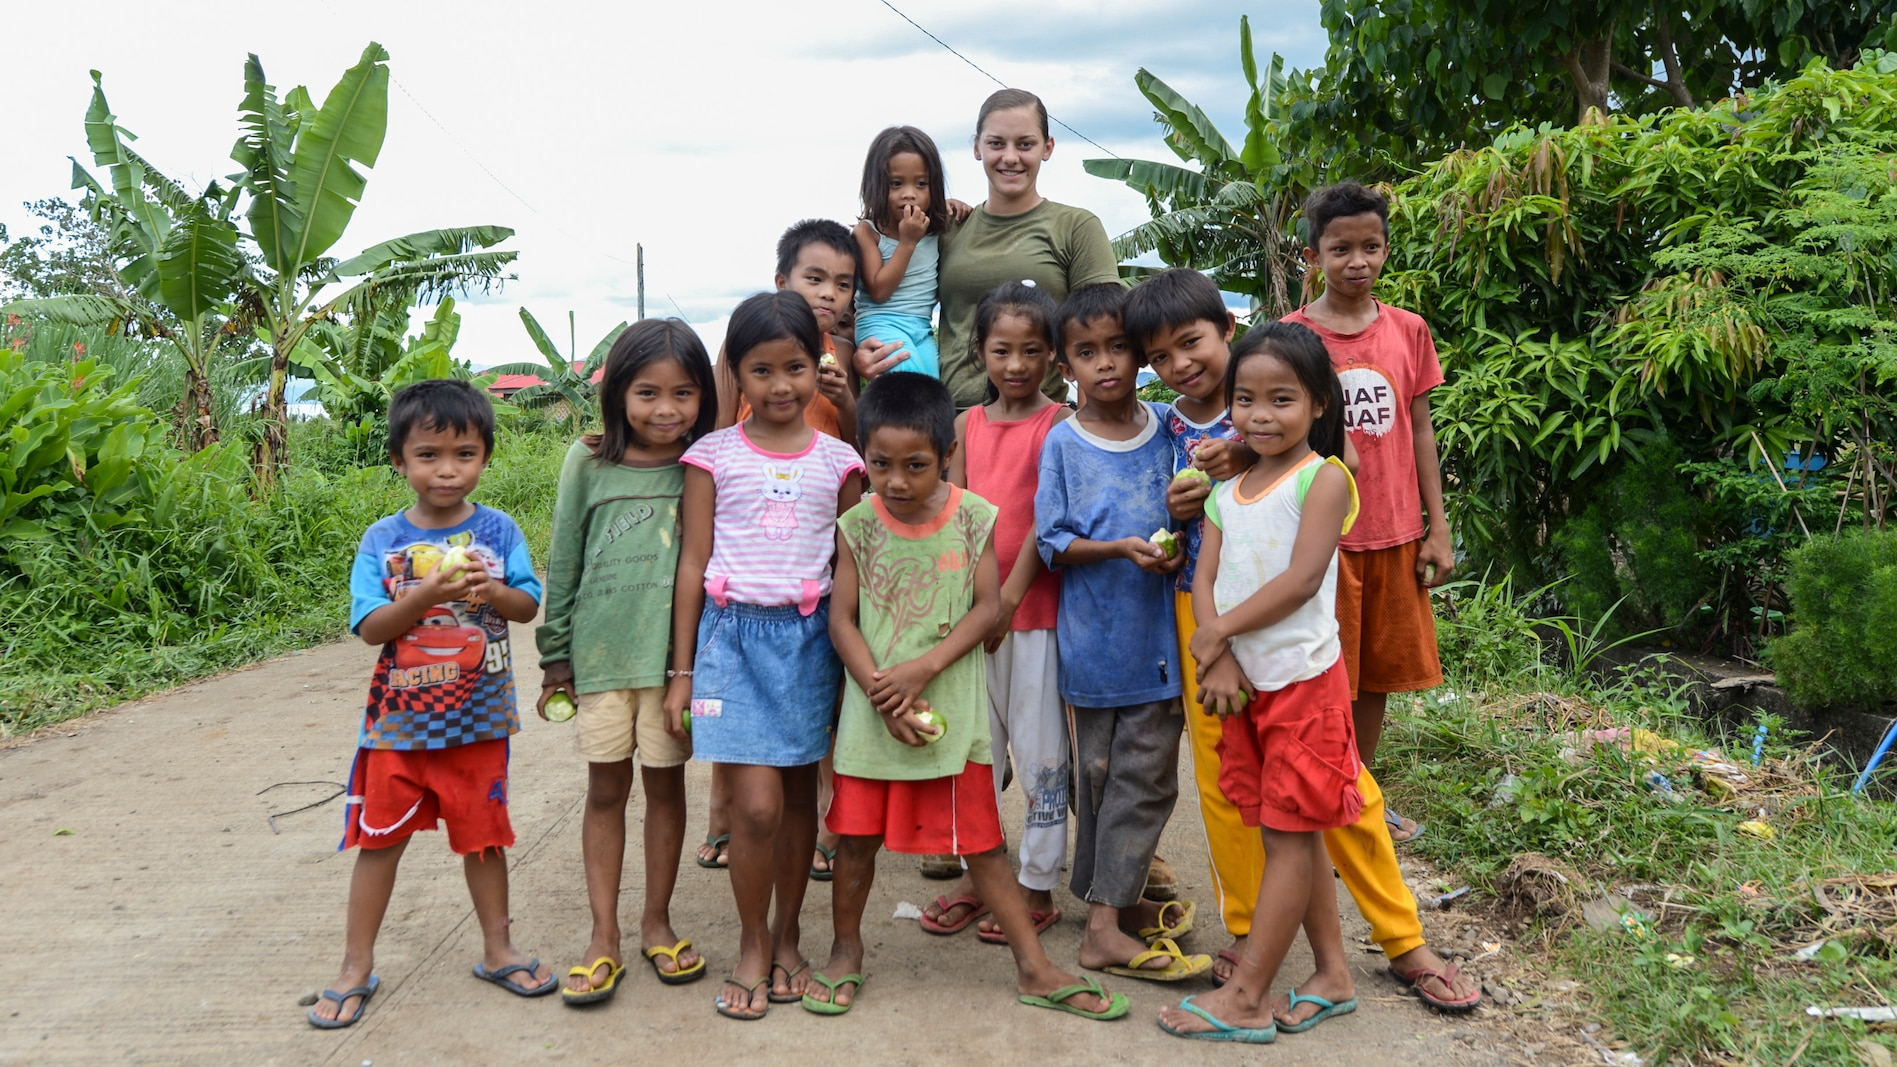 U.S. Marine Lance Cpl. Brook Klahn with 9th Engineer Support Battalion poses for a group photo with the local kids during Balikatan 2017 in Ormoc City, Leyte, April 24, 2017.